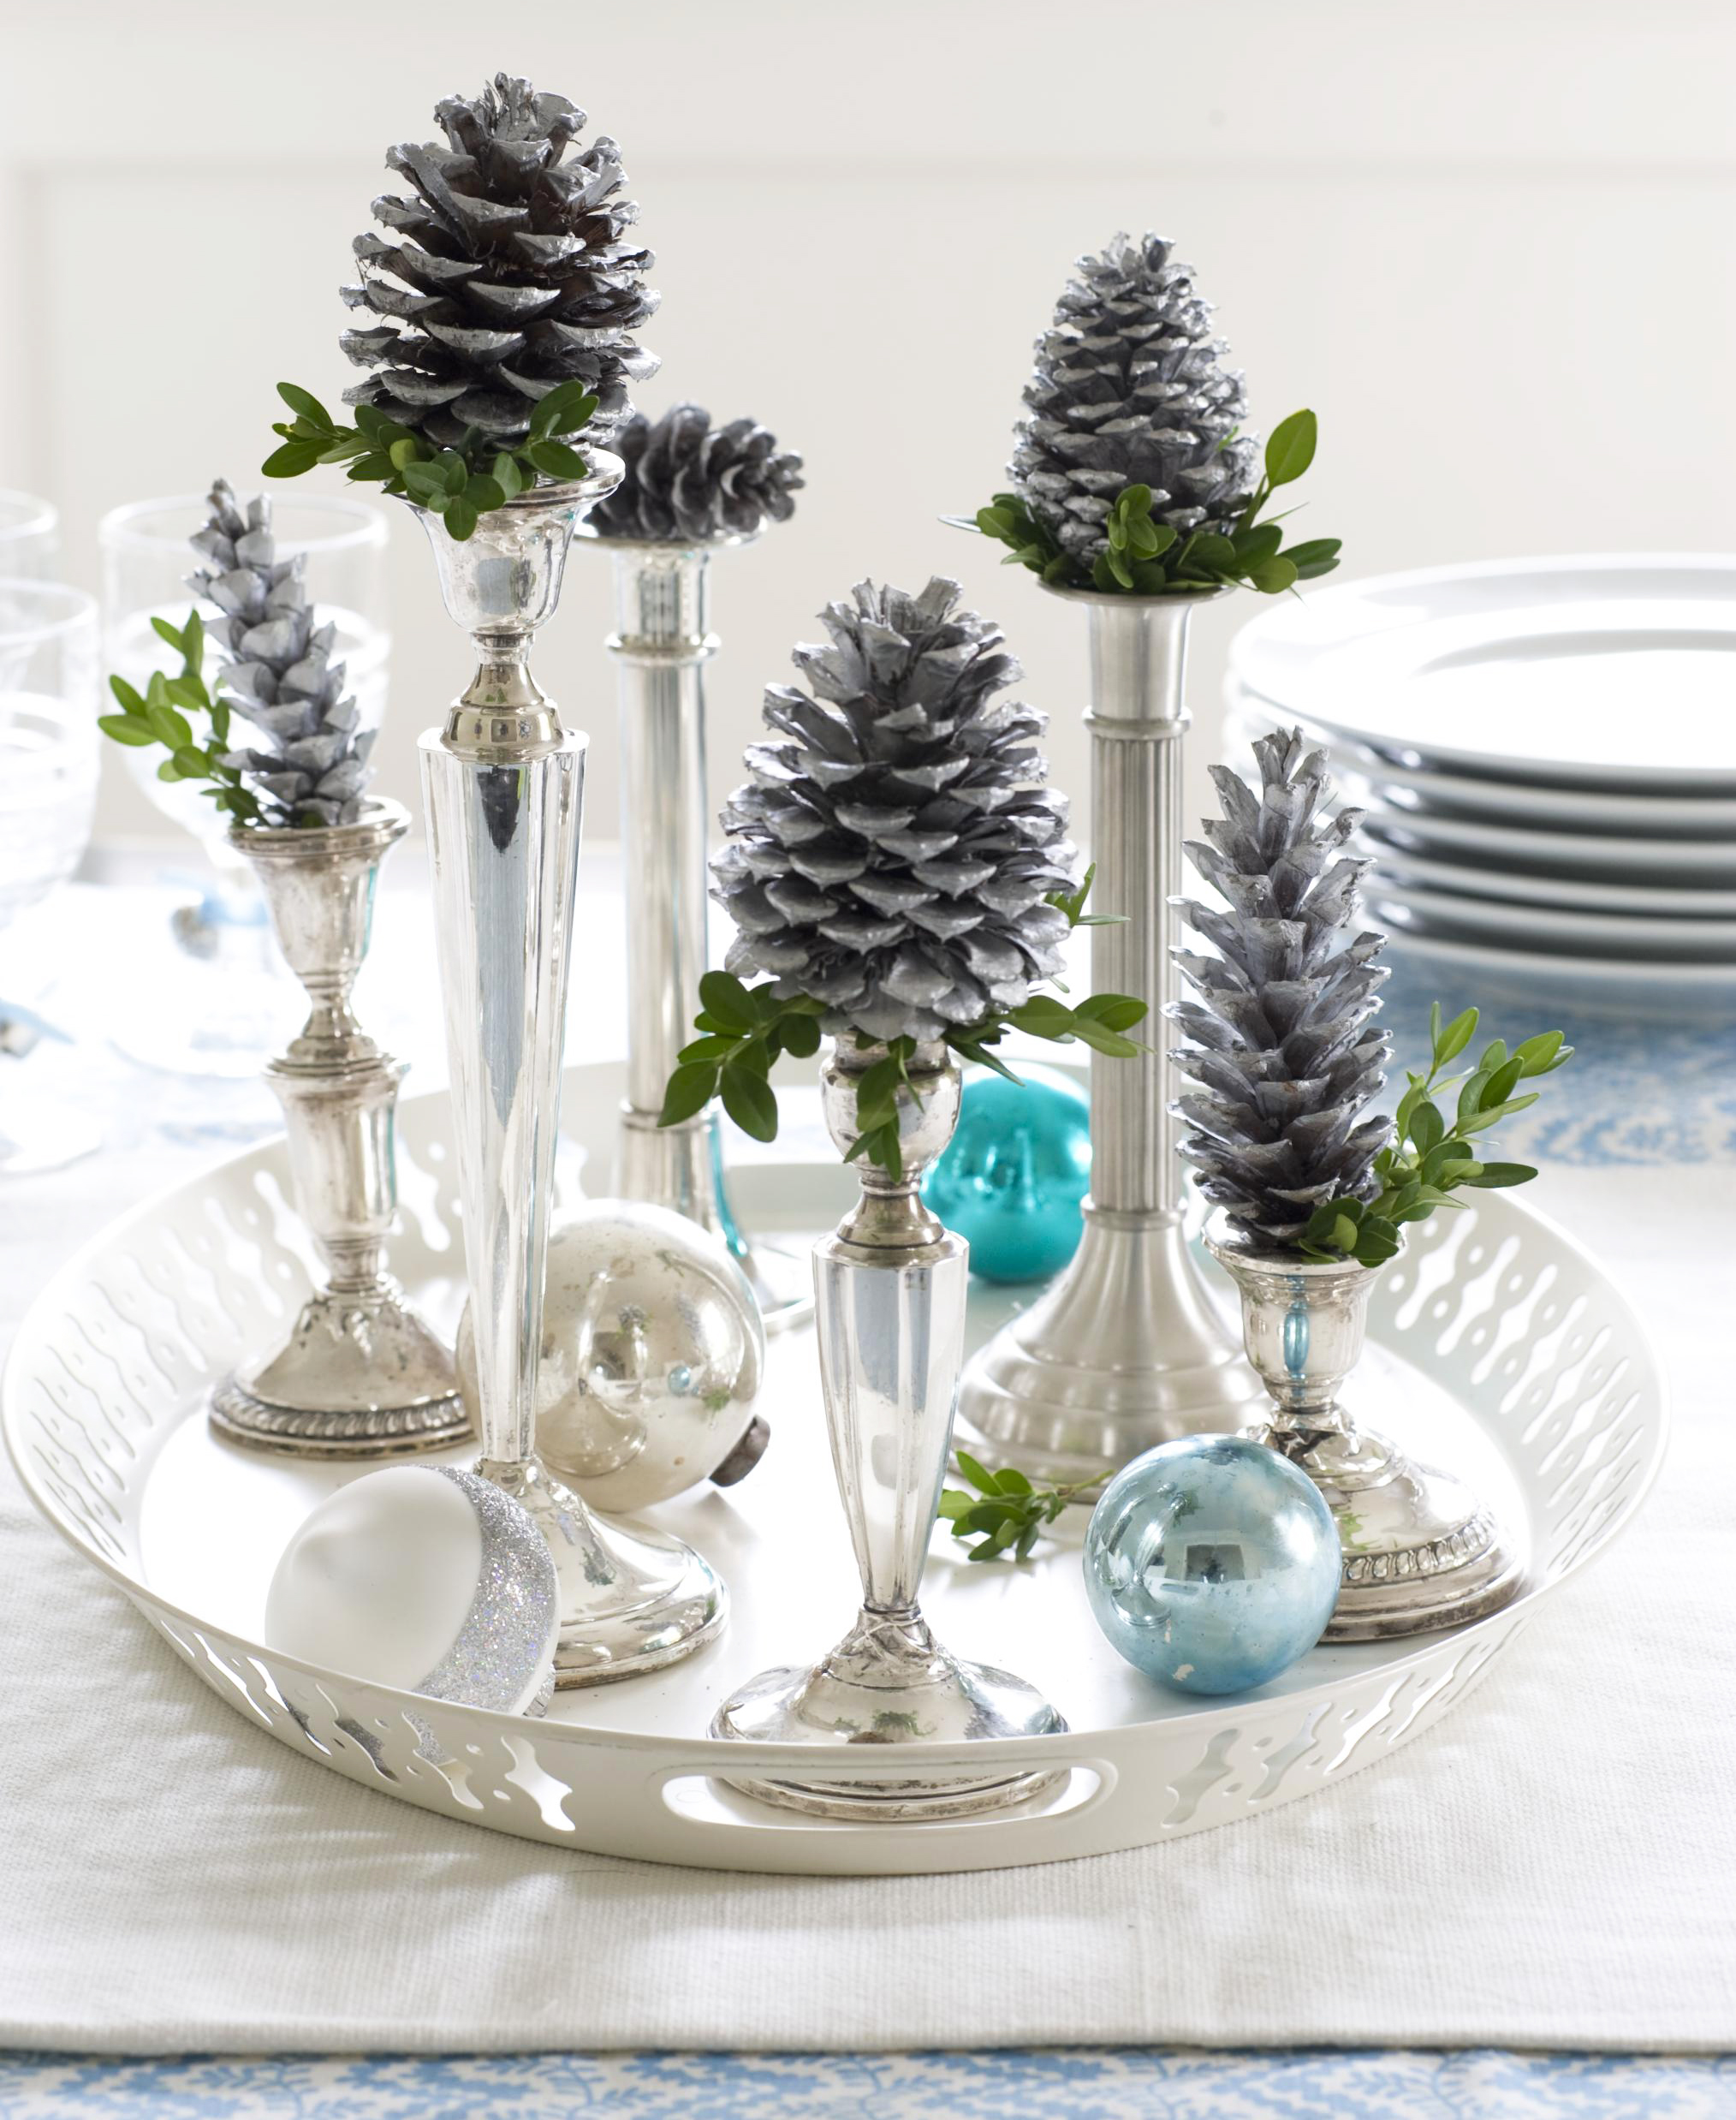 Christmas centerpiece ideas: silver candlesticks